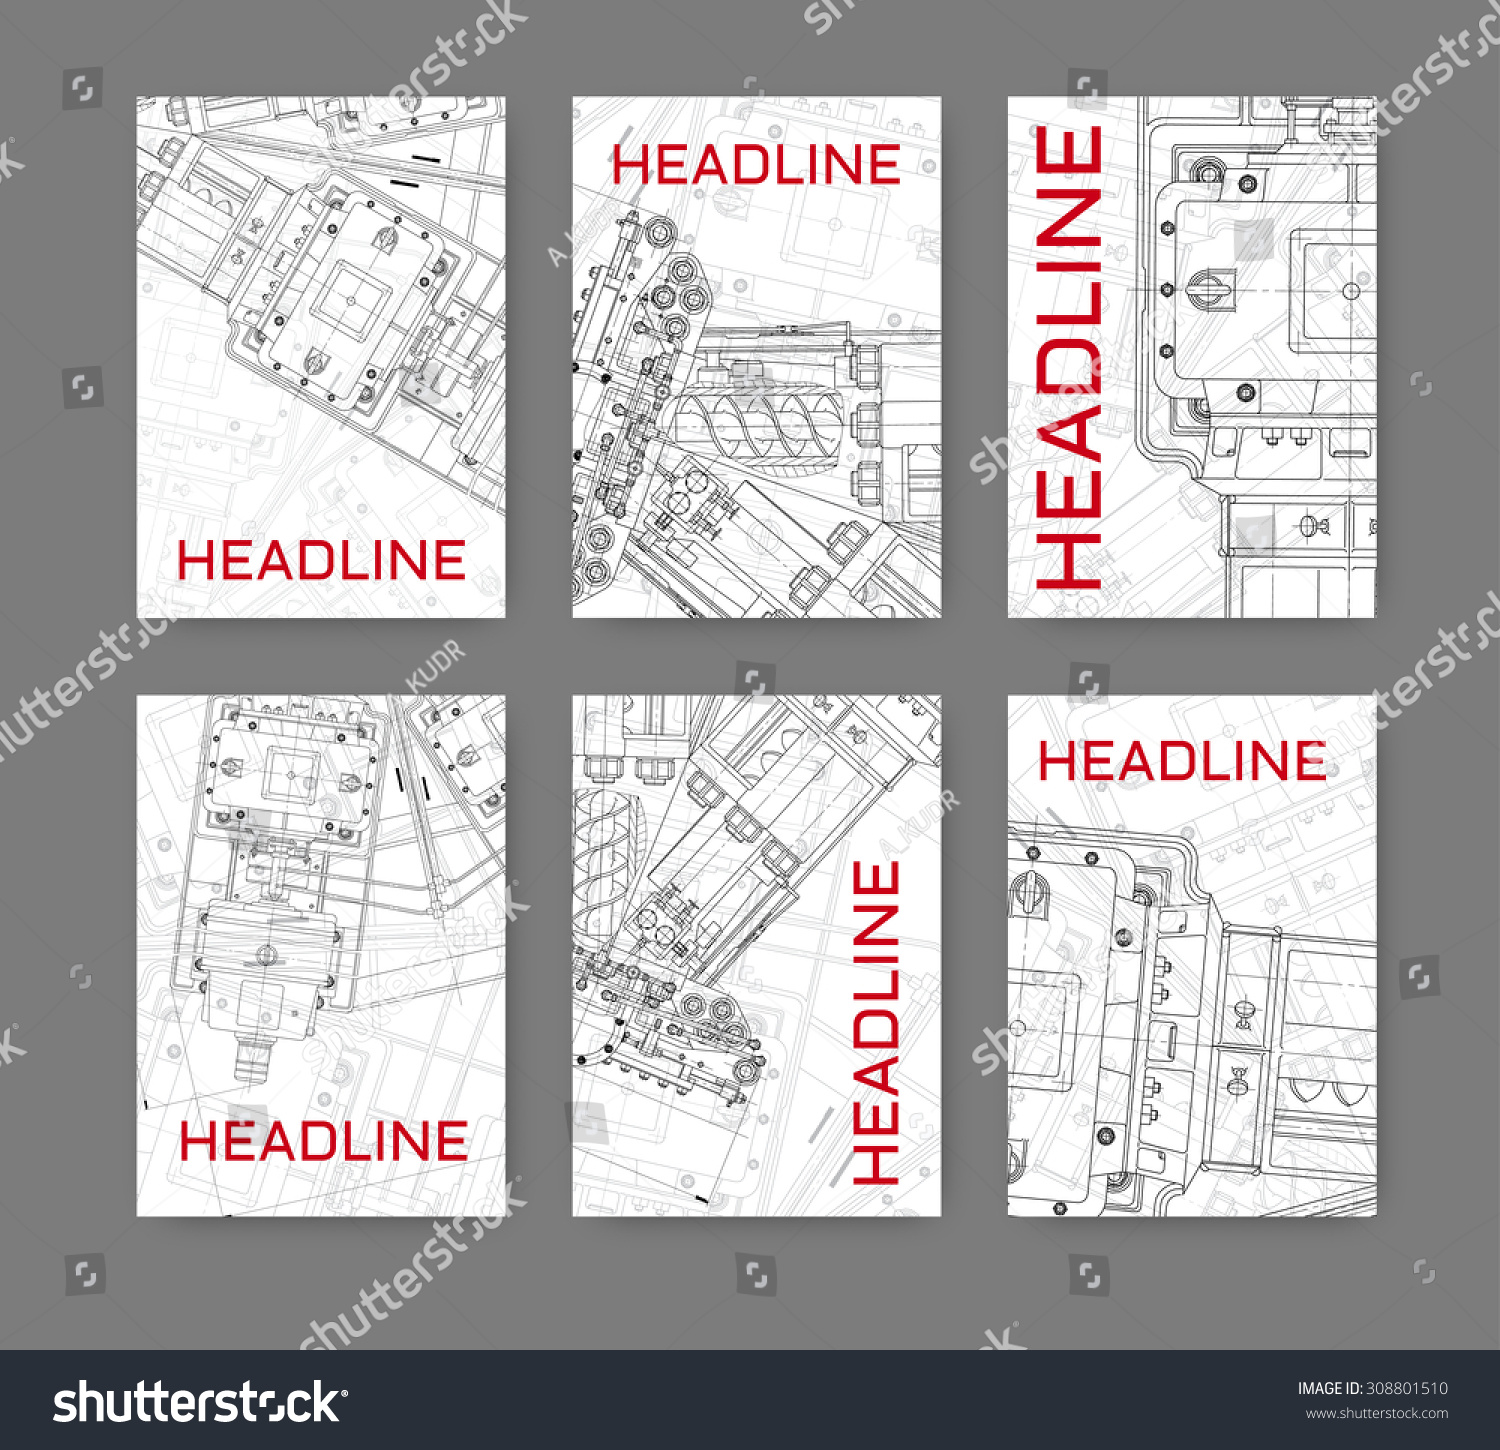 Vector illustration technical blueprint mechanism business stock vector illustration with technical blueprint of mechanism business template for flyer banner poster malvernweather Images